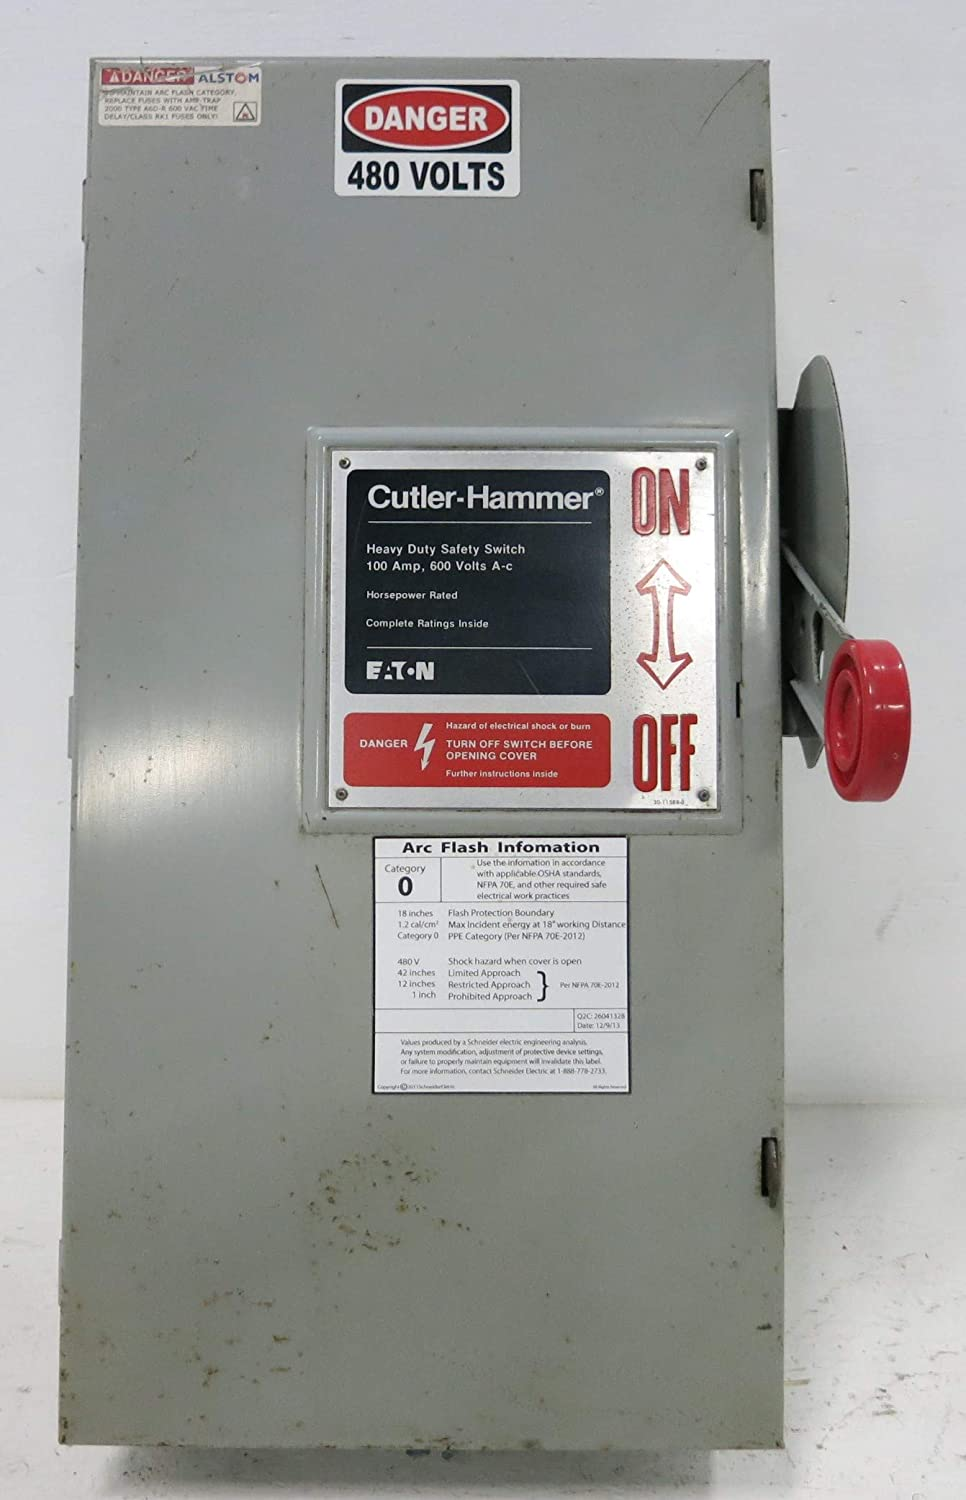 Cutler-Hammer DH363FGK 100 Amp 600V Fusible Safety Switch Disconnect 100A